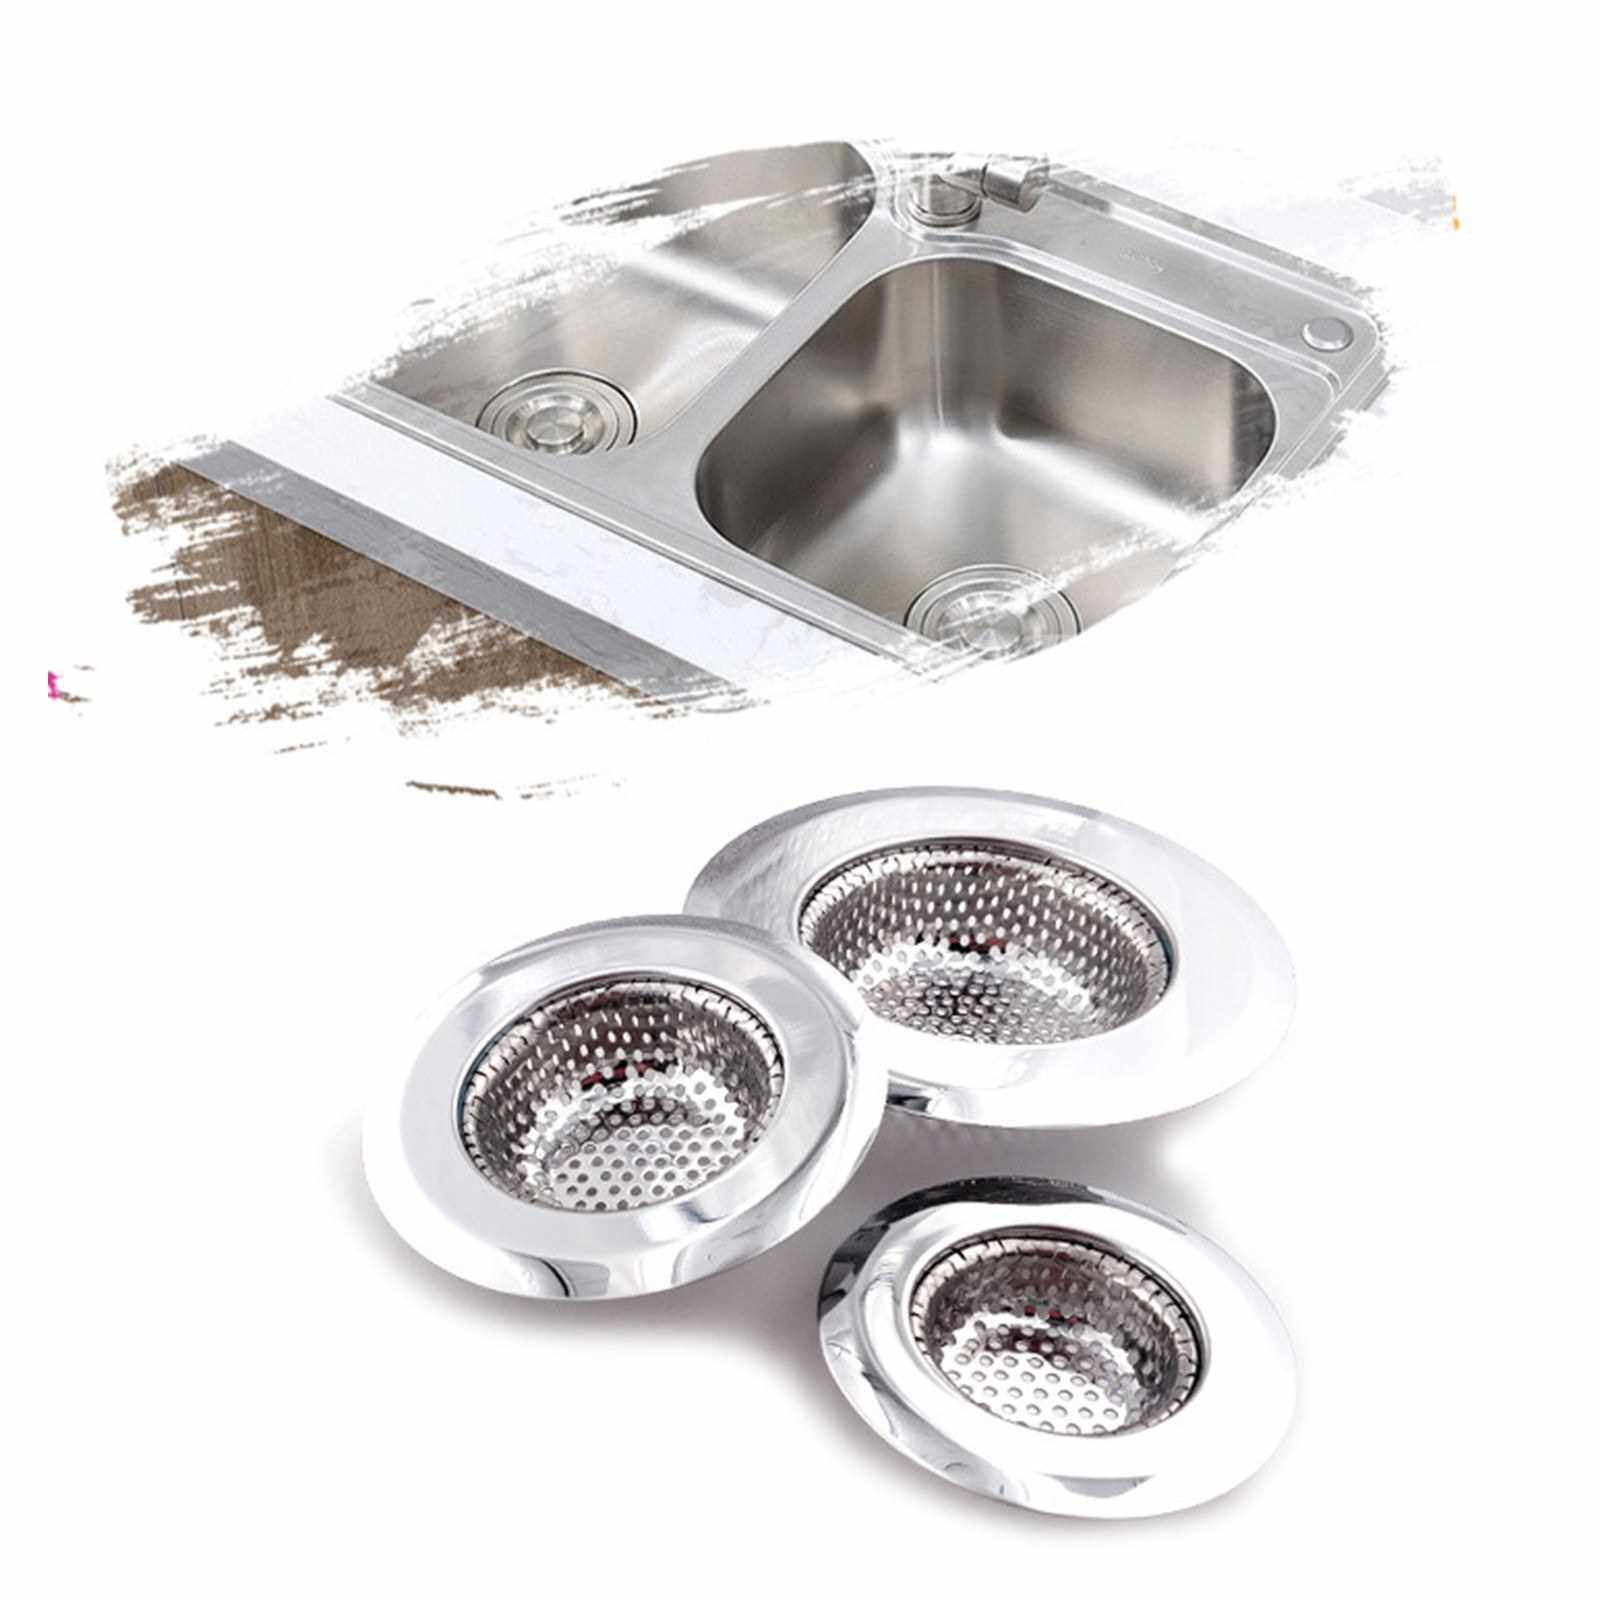 People's Choice Kitchen Sink Strainer Stainless Steel Drain Filter Strainer Large Wide Rim Basket Drain Strainer Food Catcher for the Kitchen Sink (S)